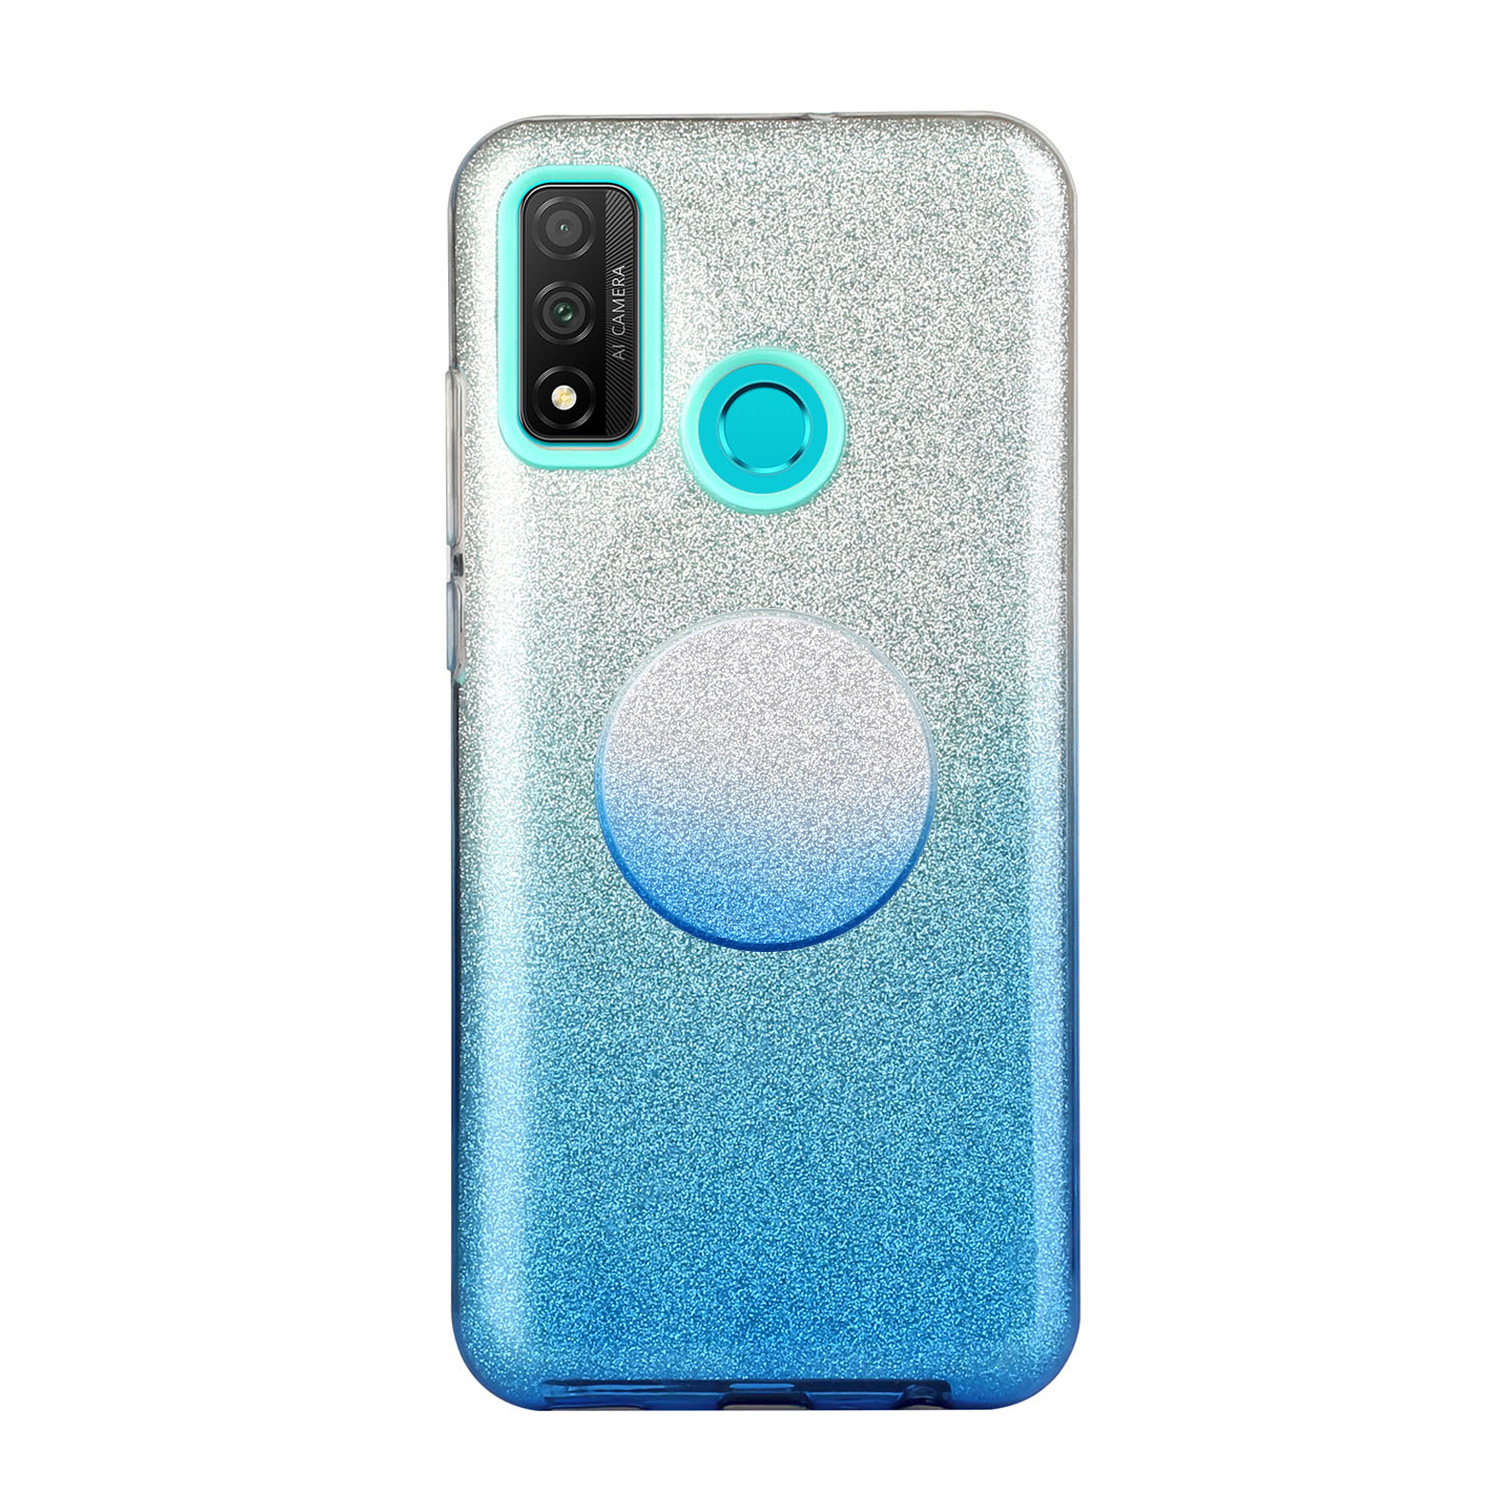 For HUAWEI Mate 30/Nova 5I pro/Mate 30 Pro/PSmart /Y5P/Y6P 2020 Phone Case Gradient Color Glitter Powder Phone Cover with Airbag Bracket blue